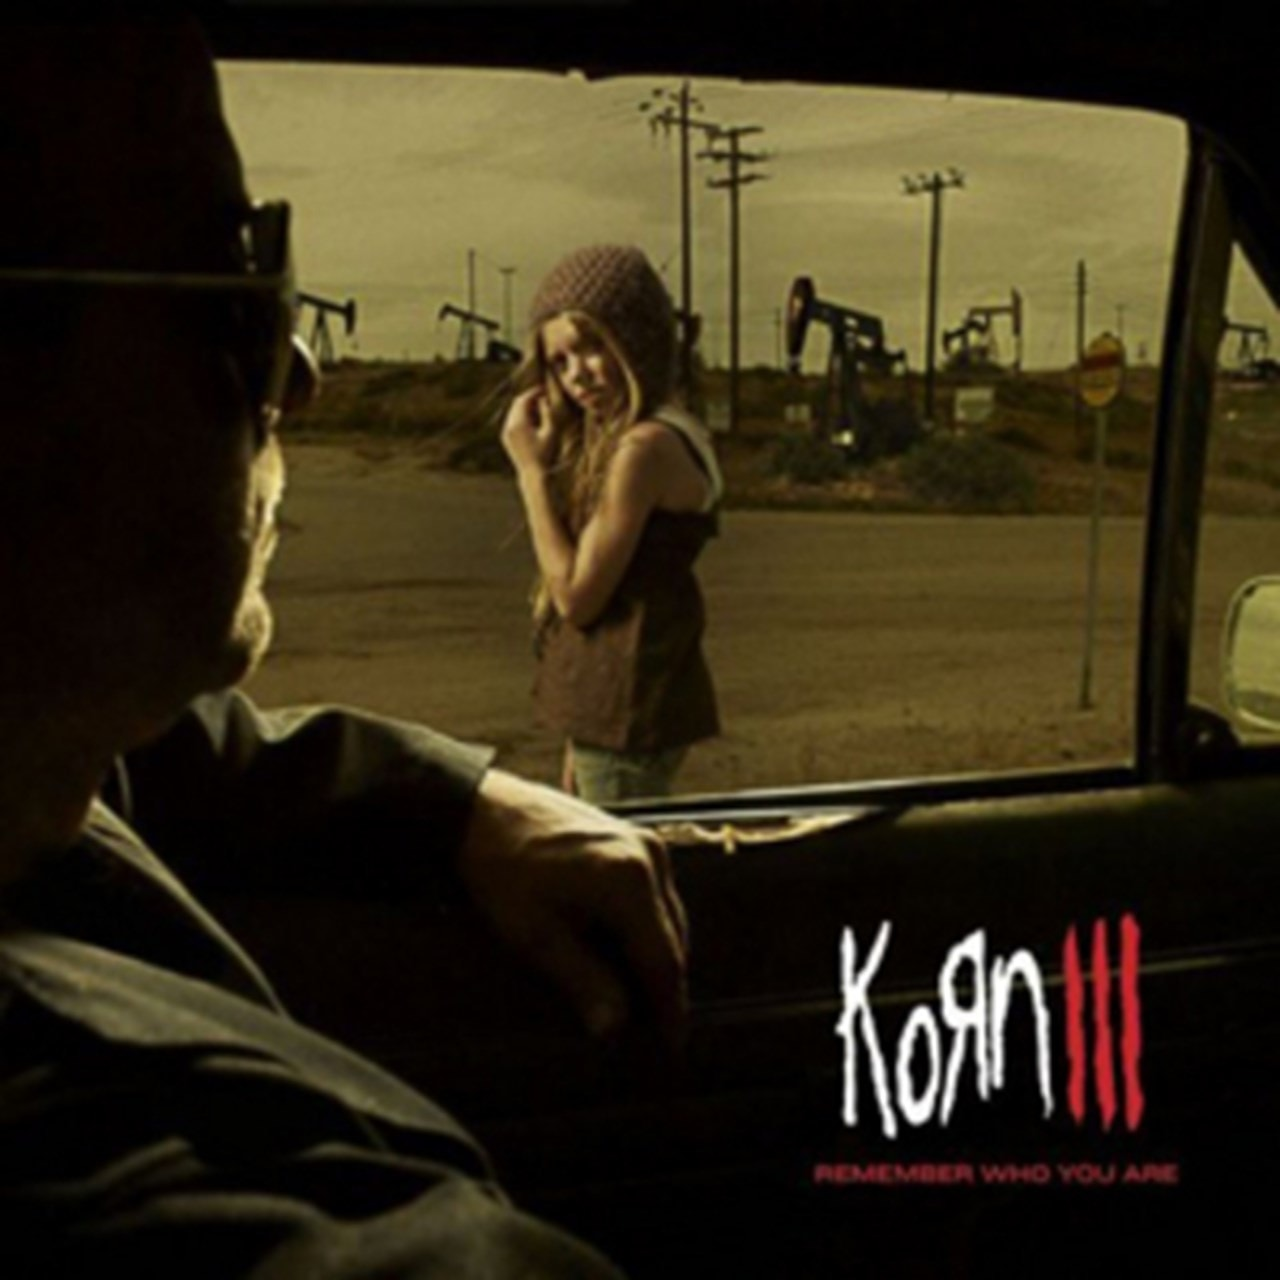 Korn III: Remember Who You Are - 1